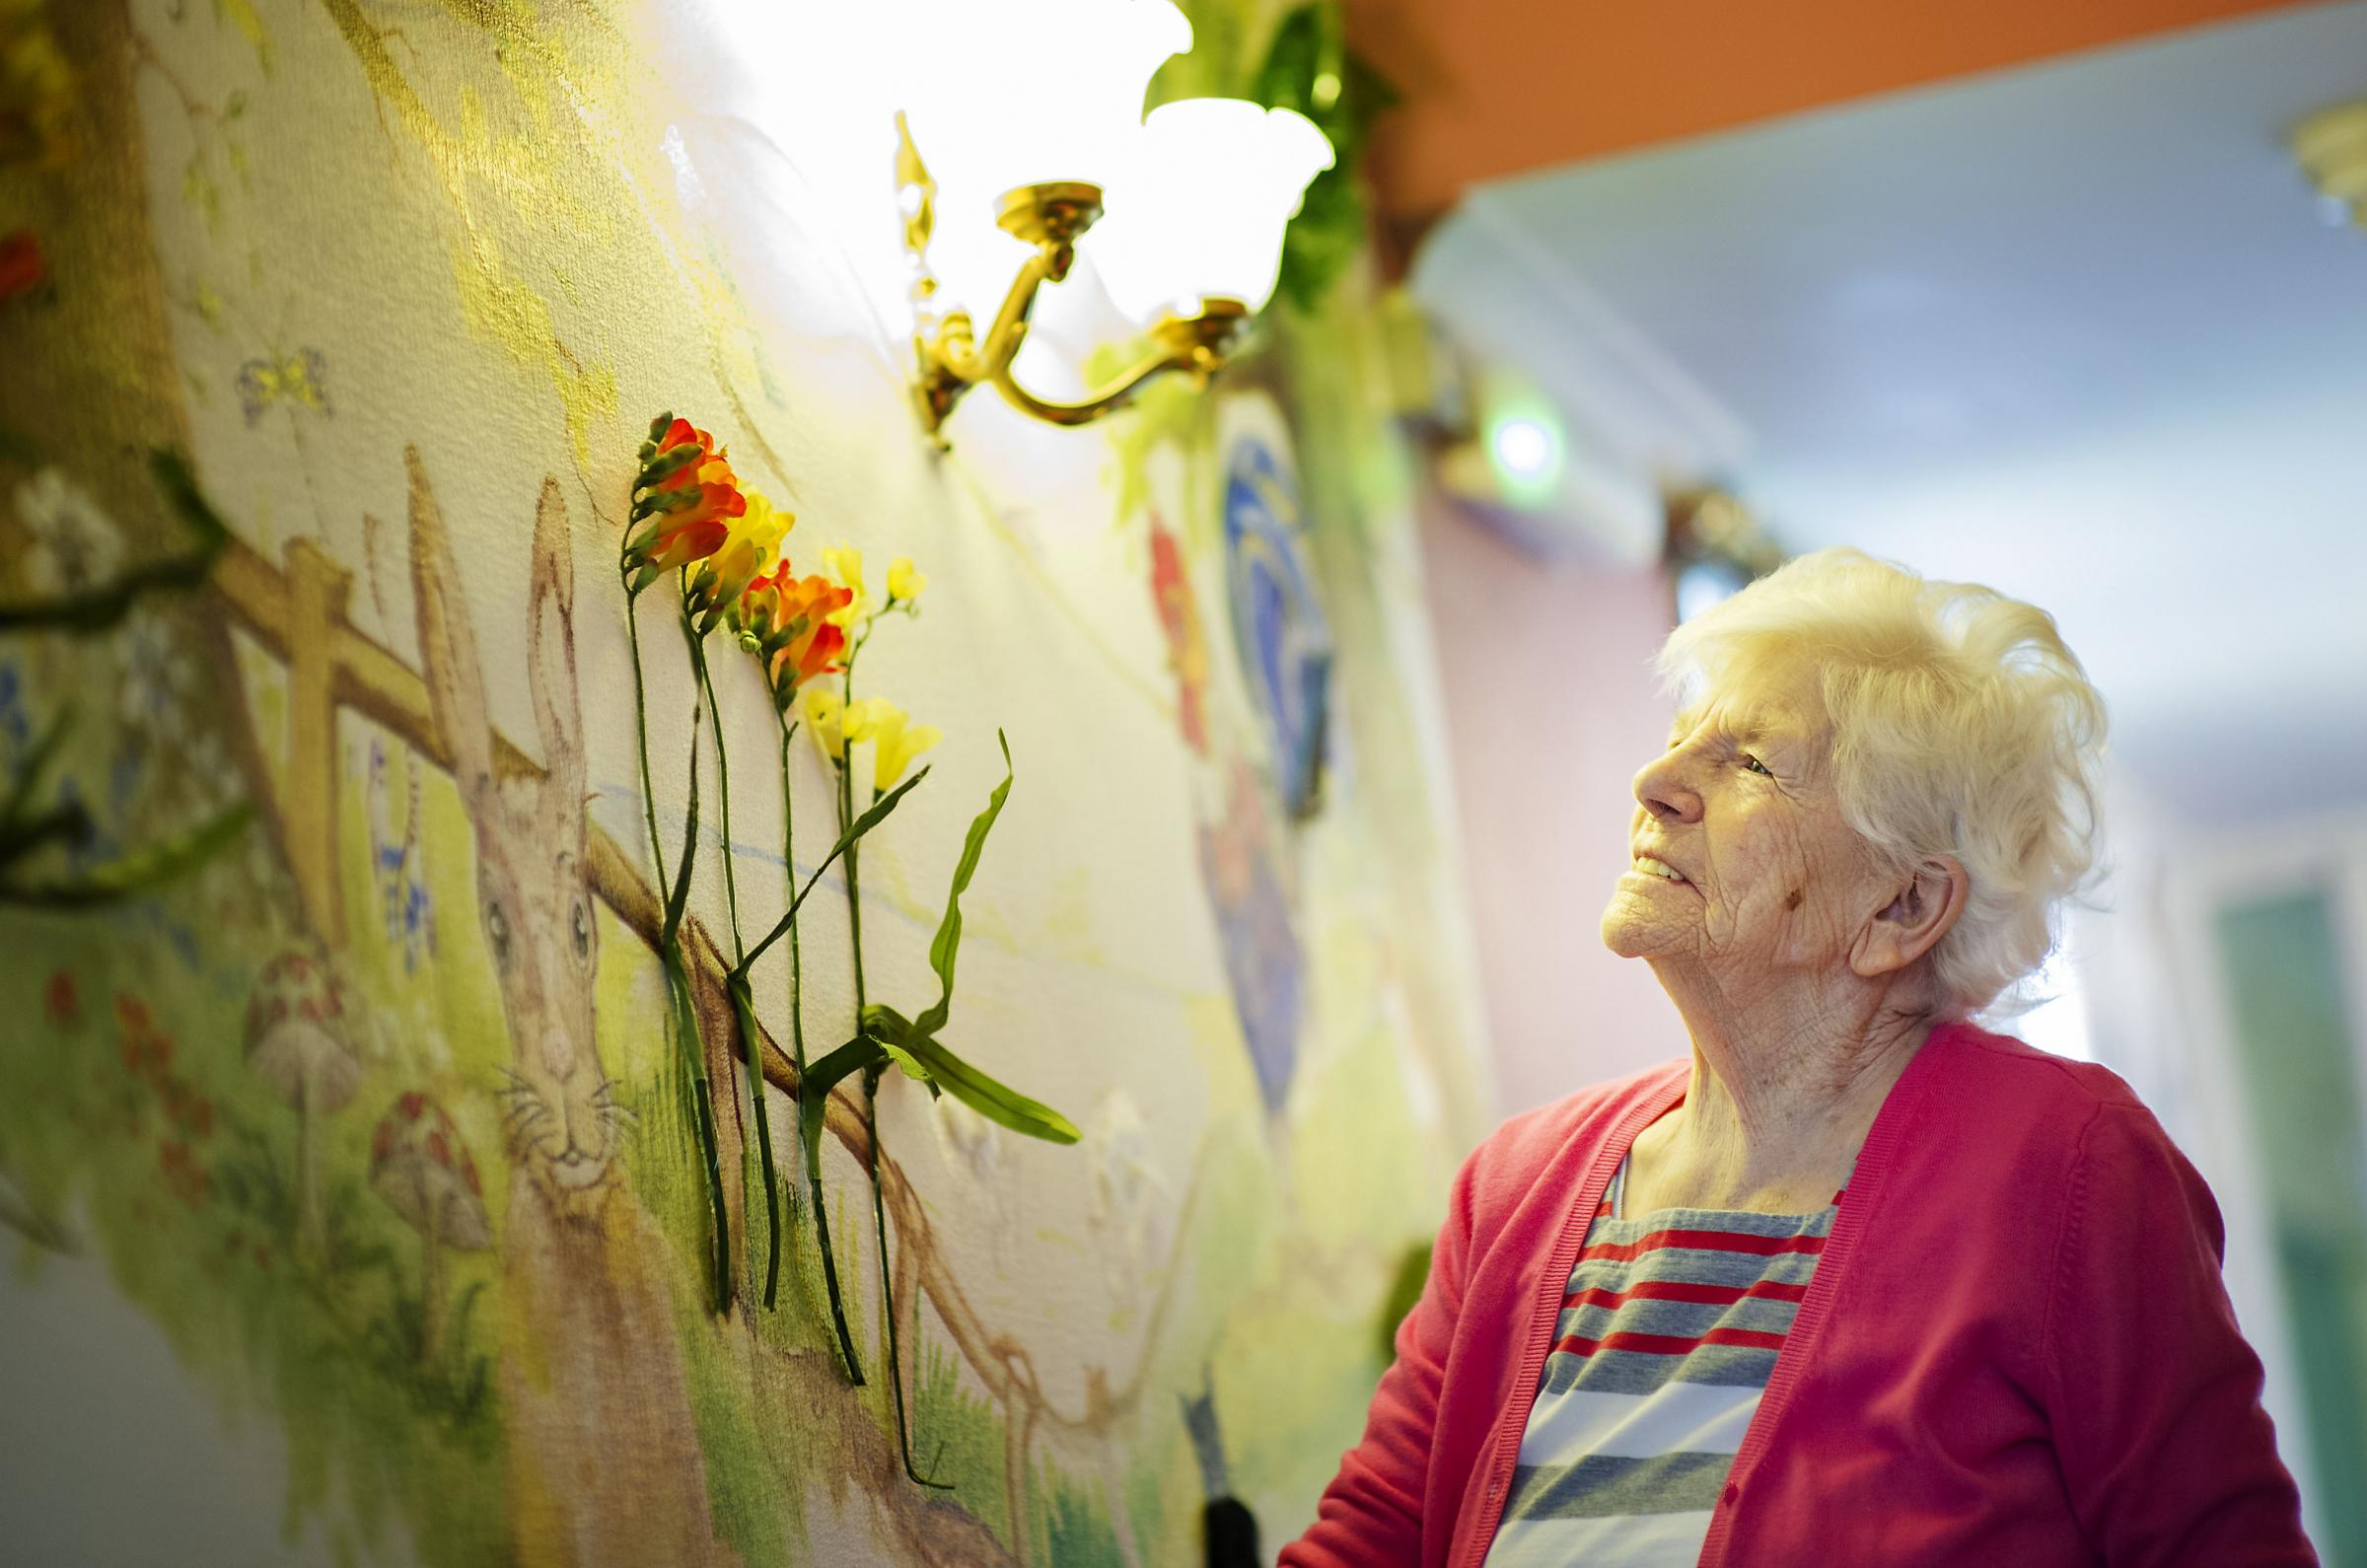 Peggy Gowrie, aged 95, of Beechwood Residential Care Home, Upton, examines the new sensory murals. Photo: Ed Maynard.